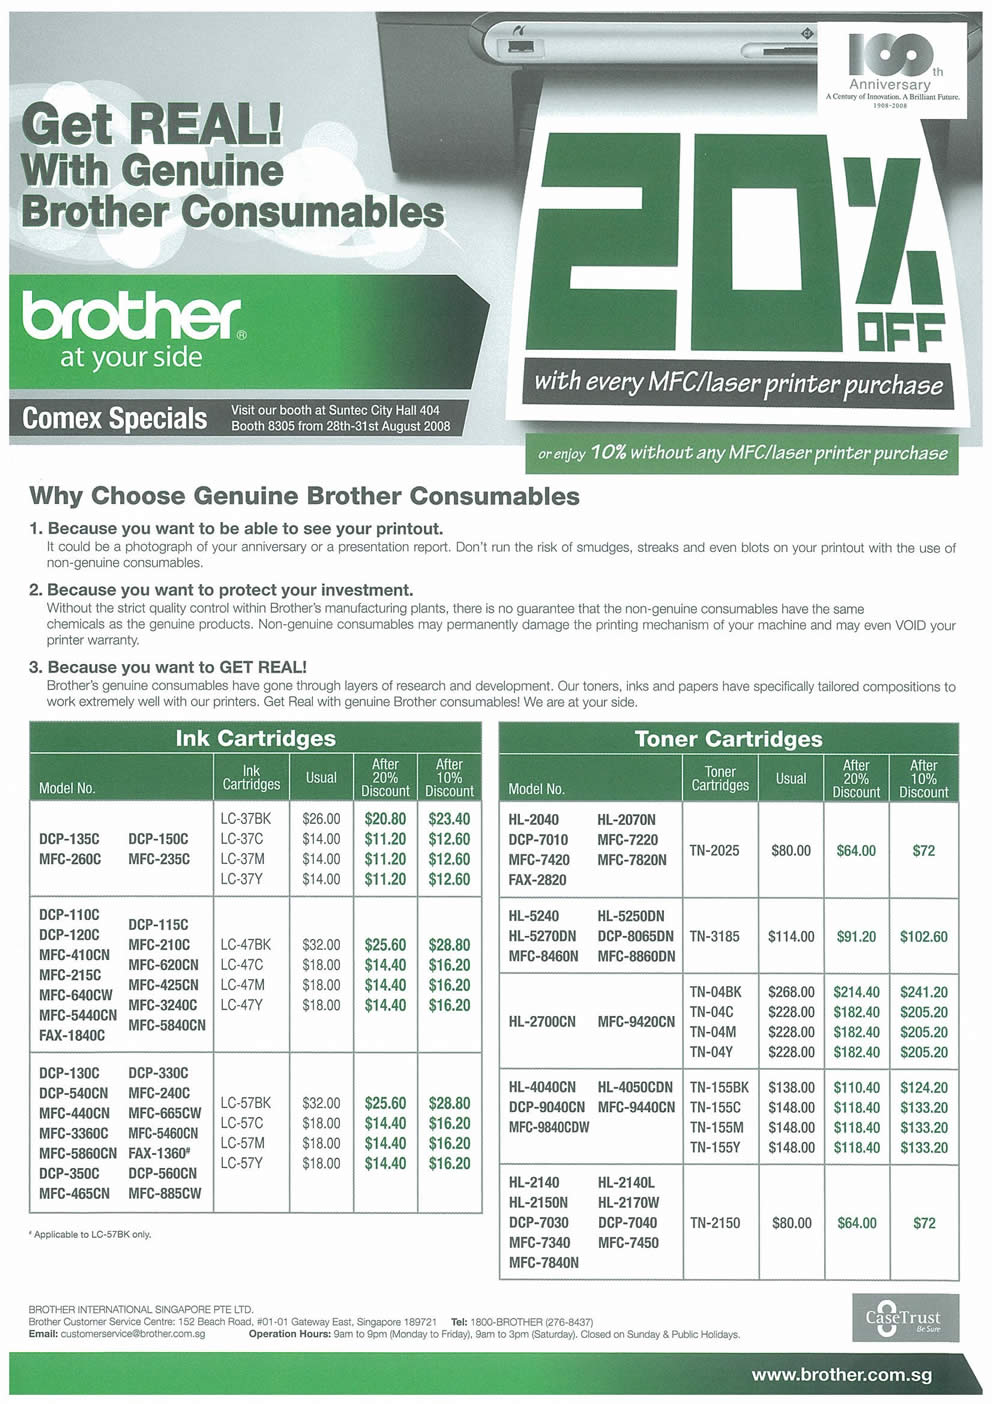 Comex 2008 price list image brochure of Brother Consumables